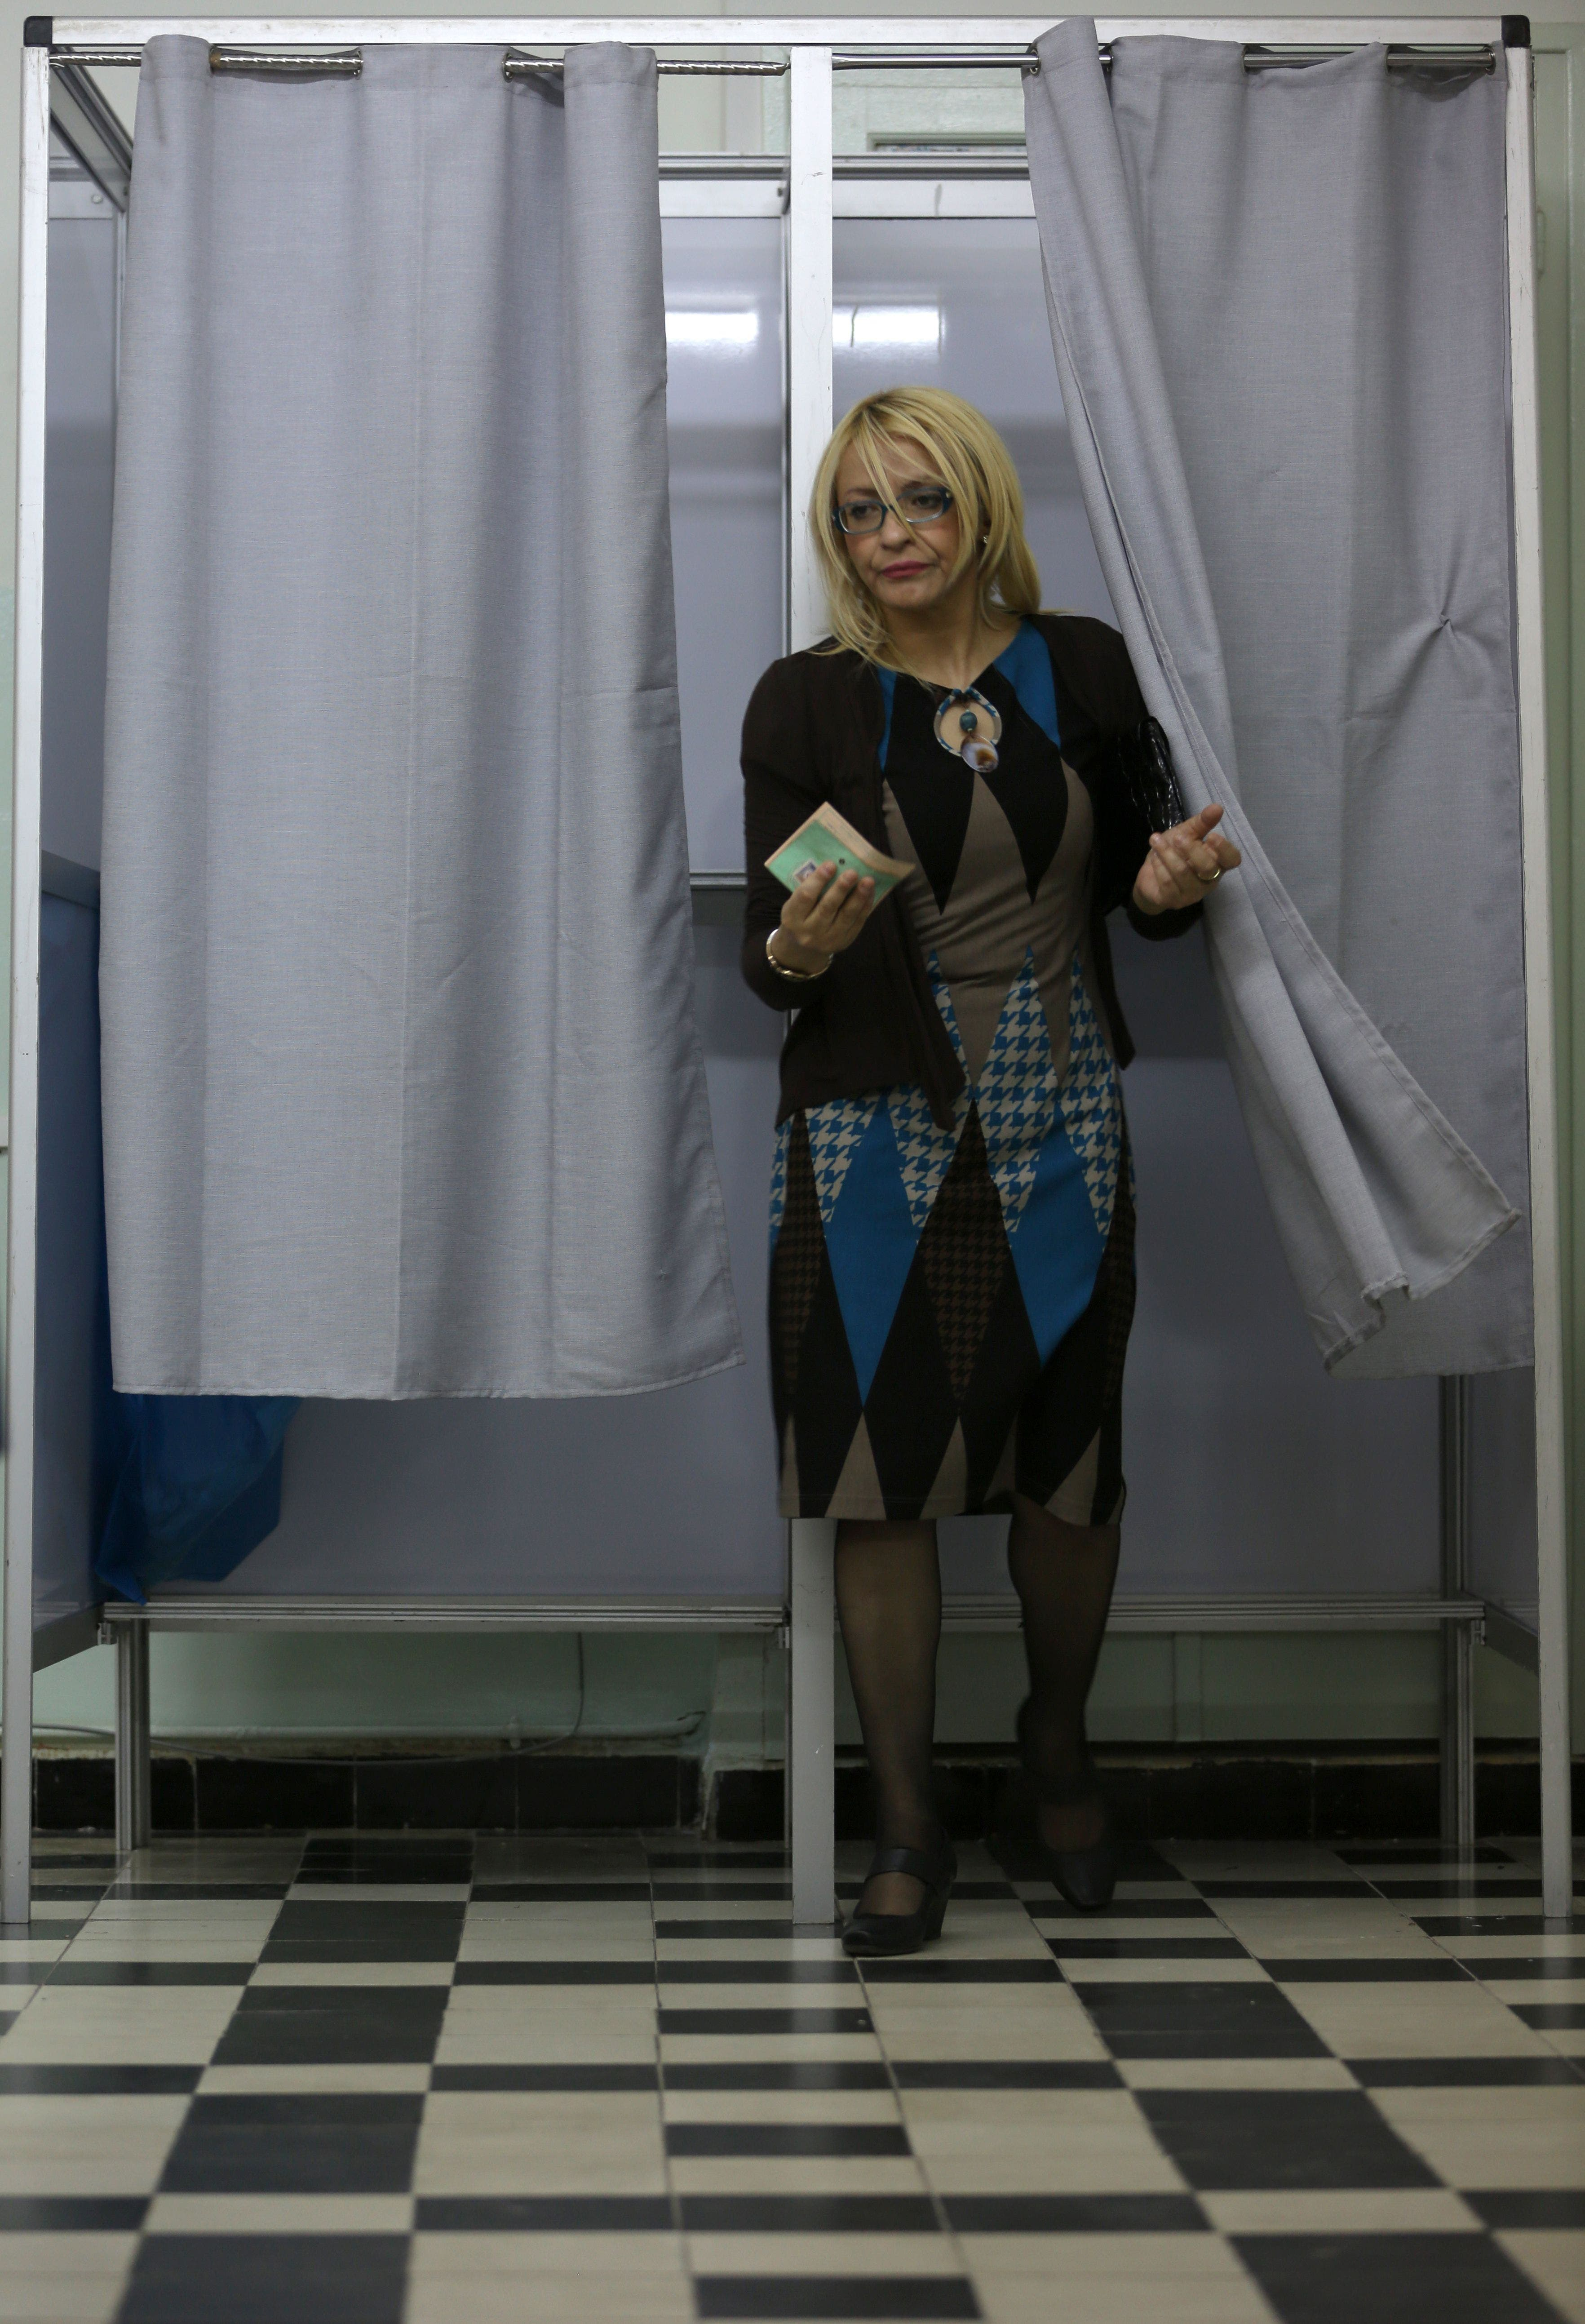 An Algerian woman prepares to cast her vote in the presidential elections at a classroom turned into a polling station on April 17, 2014 in Algiers. (AFP)